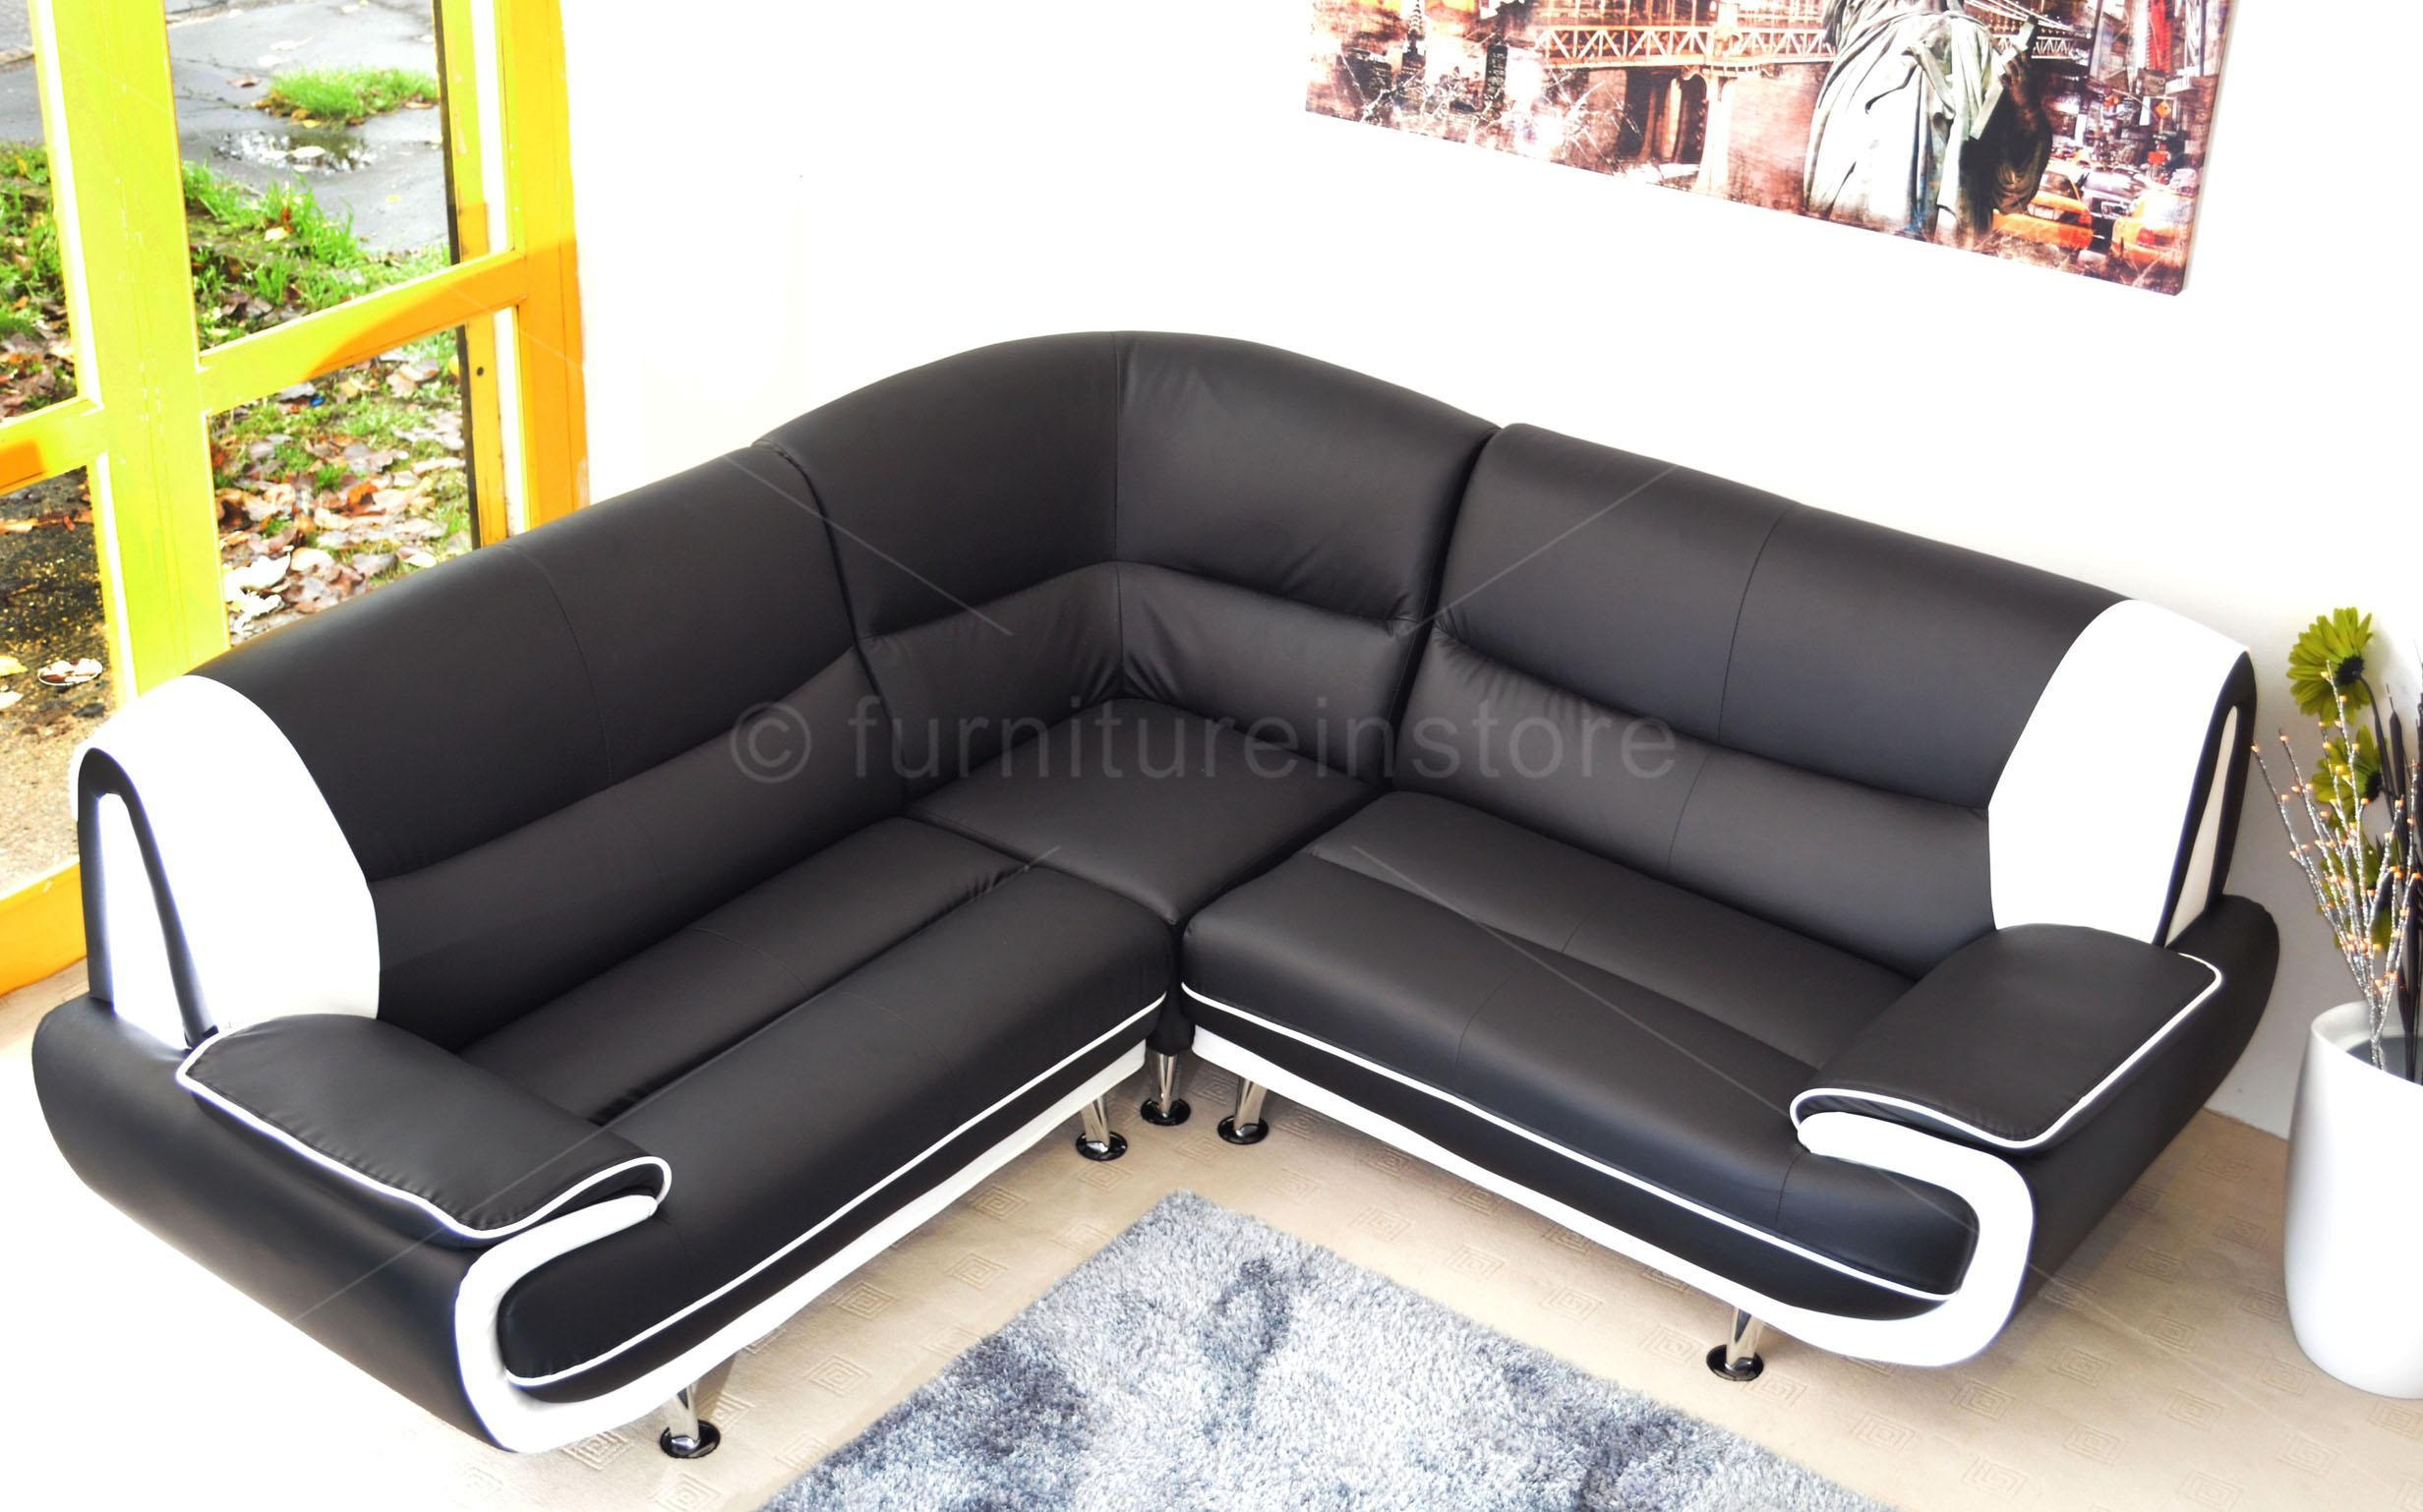 22 choices of large black leather corner sofas sofa ideas for Black corner sofa